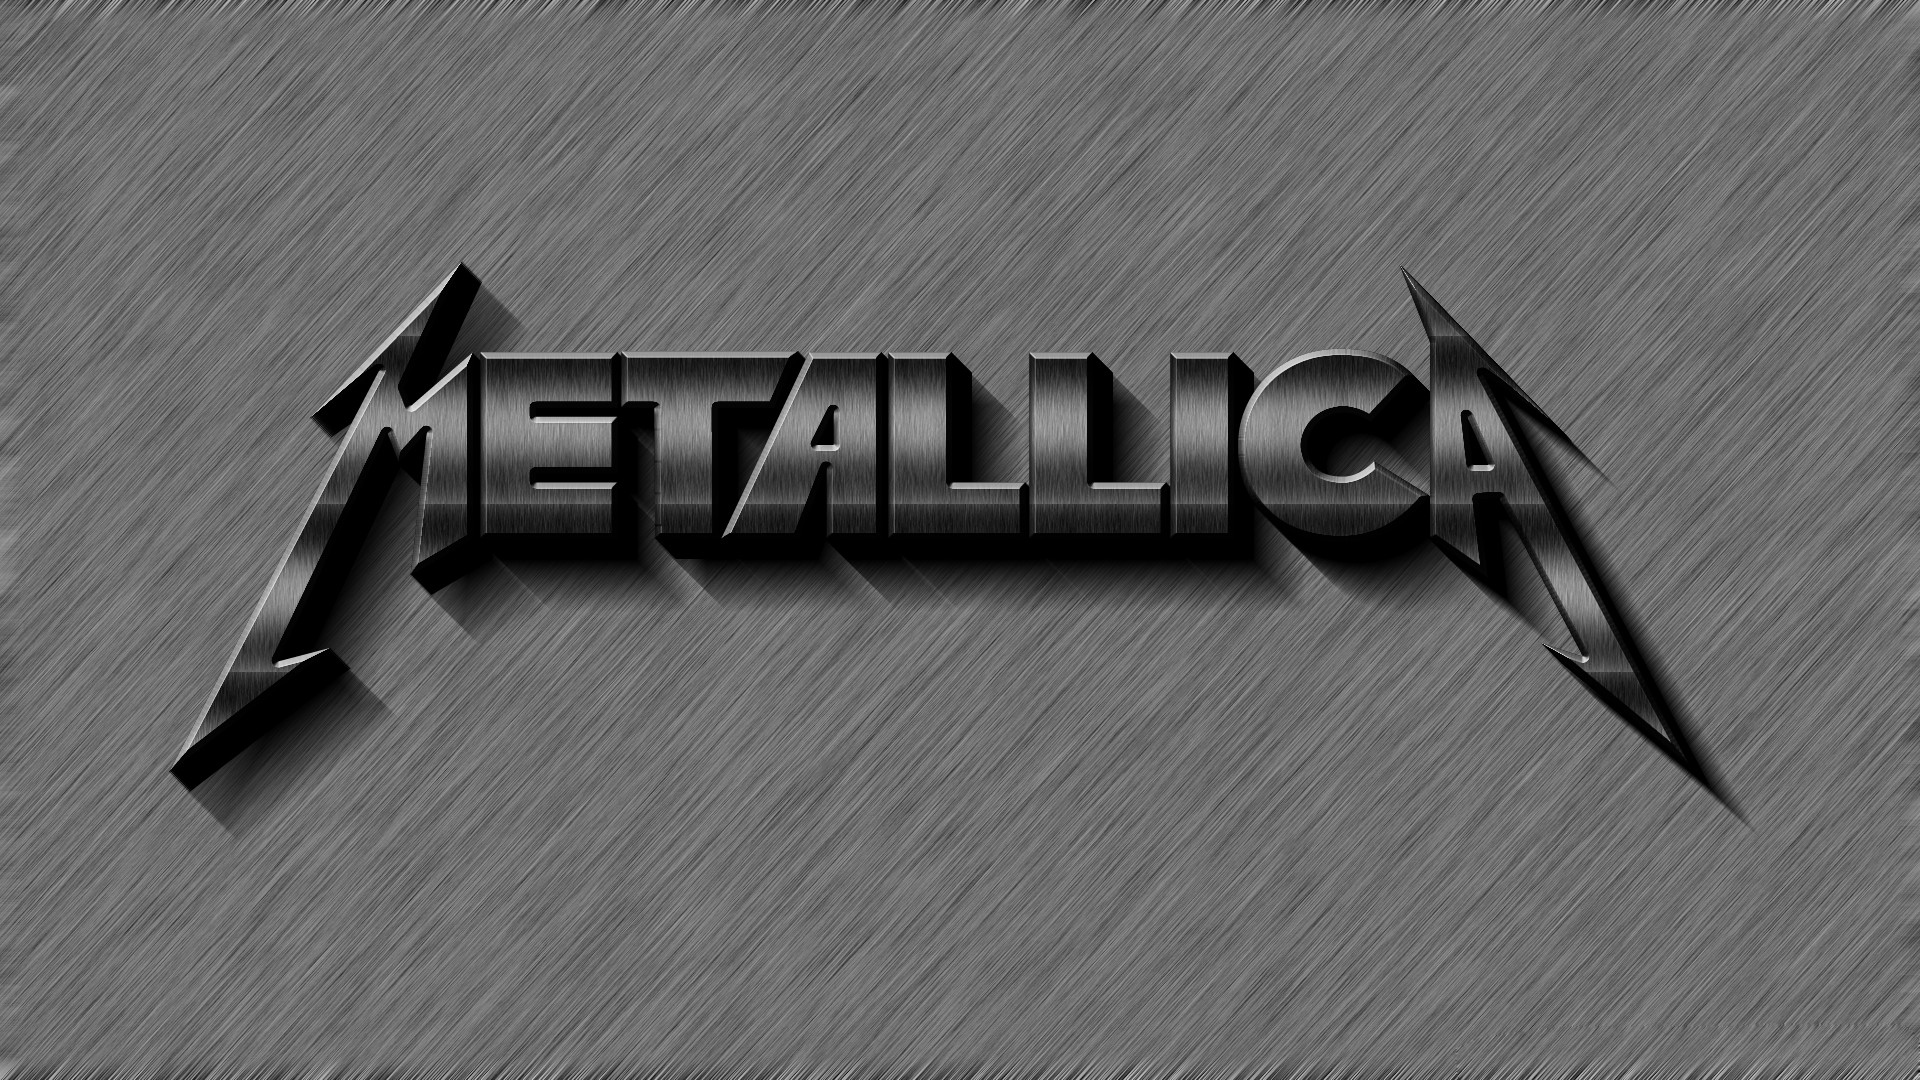 Travel Agency Wallpaper Hd Metallica Logo Wallpapers Pixelstalk Net